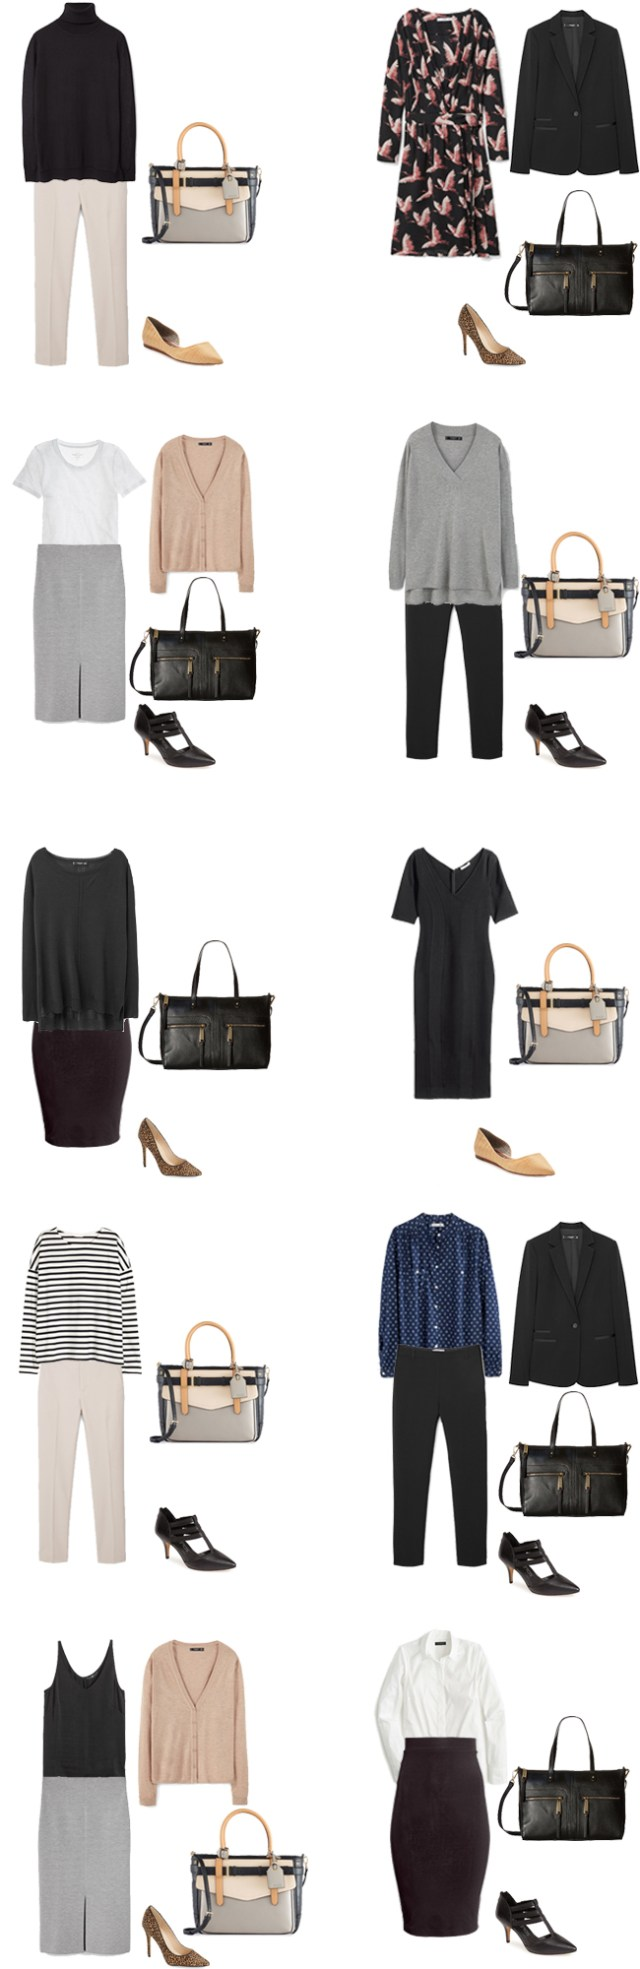 Basic Work Capsule Outfits 11-20 #capsulewardrobe #workwardrobe #workwear #capsule